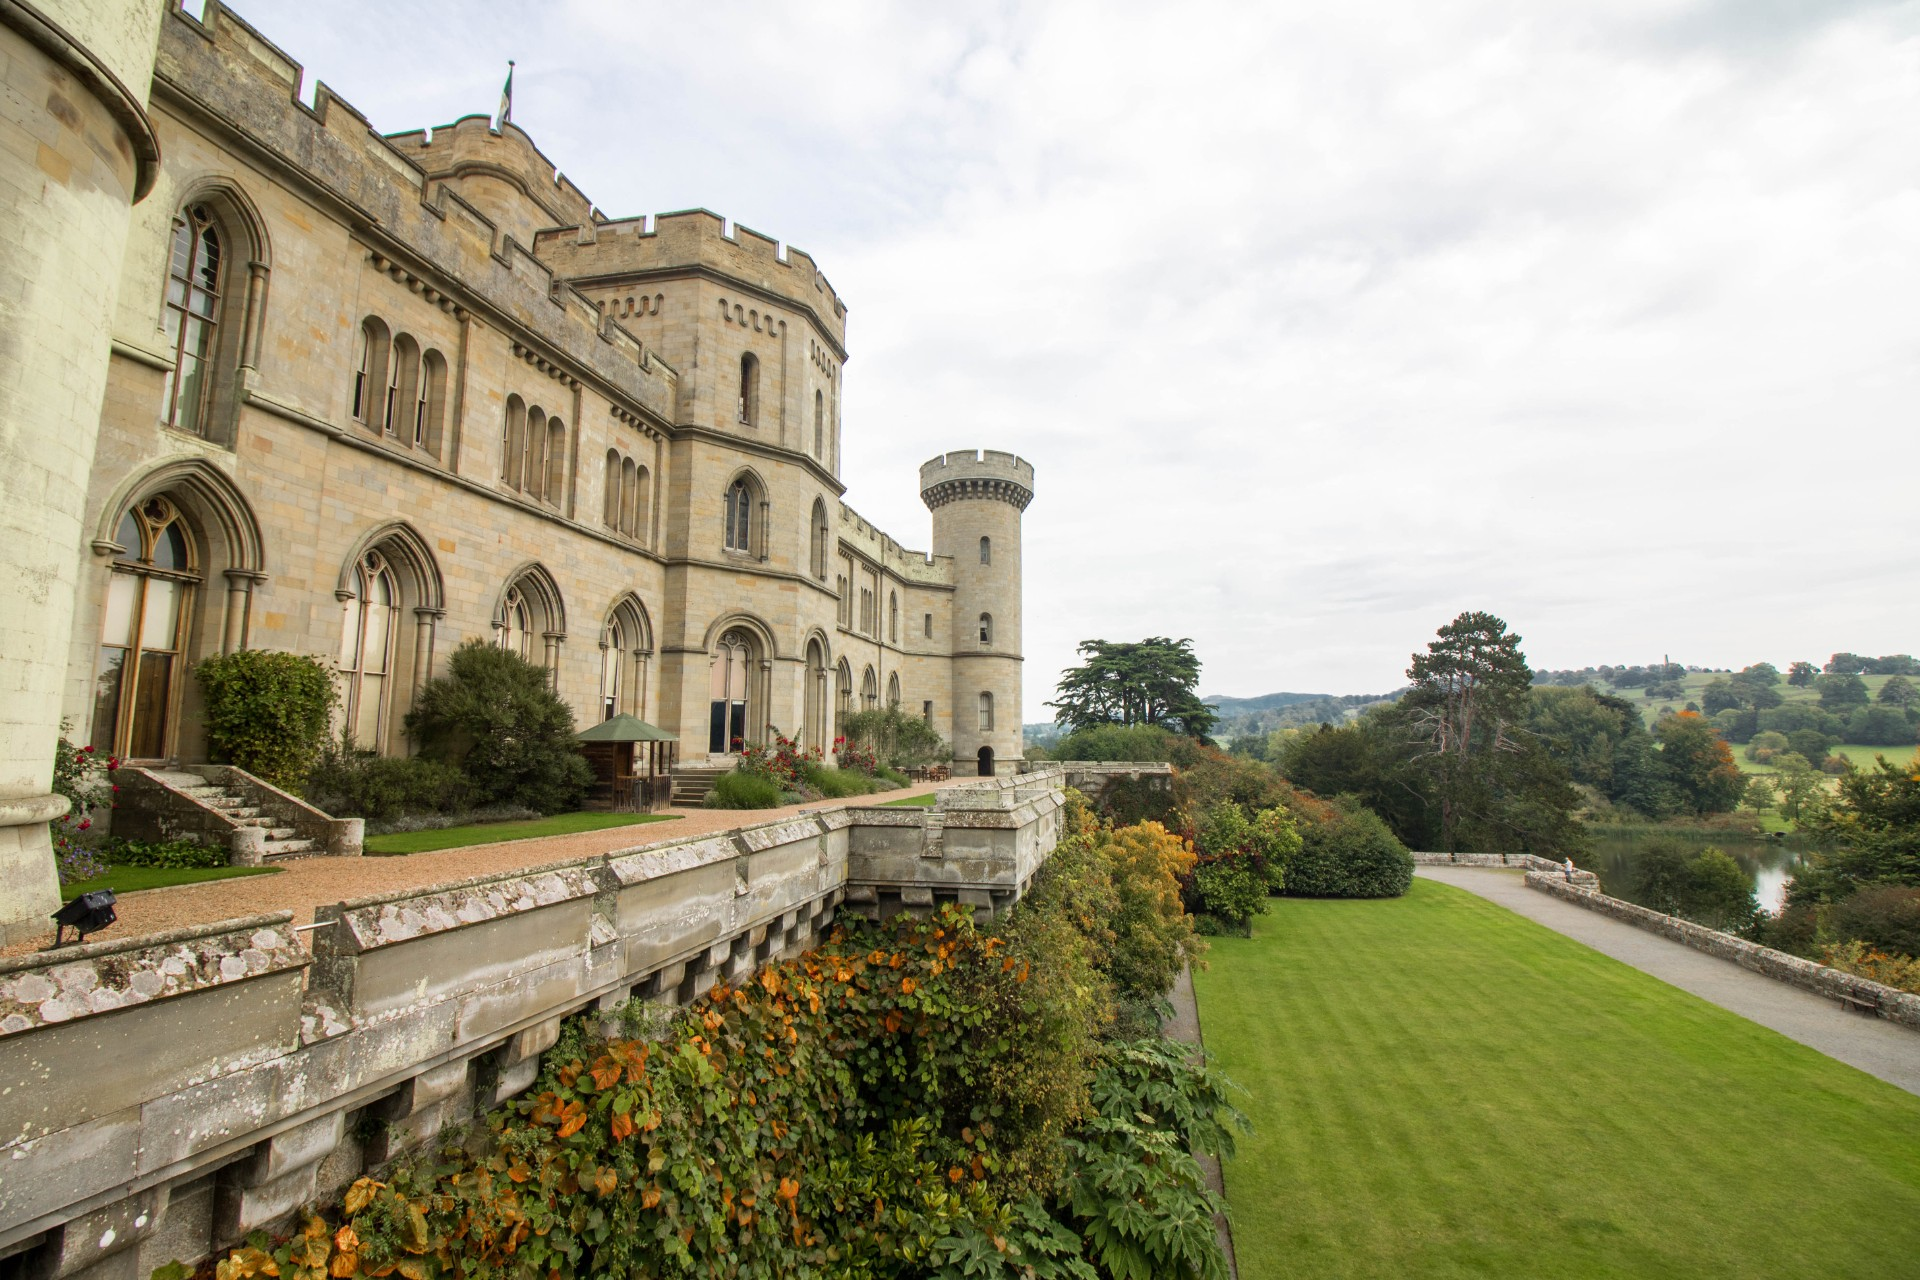 Eastnor Castle. Old British Castle. Green Lawn. Top 25 Things to Do in Herefordshire.